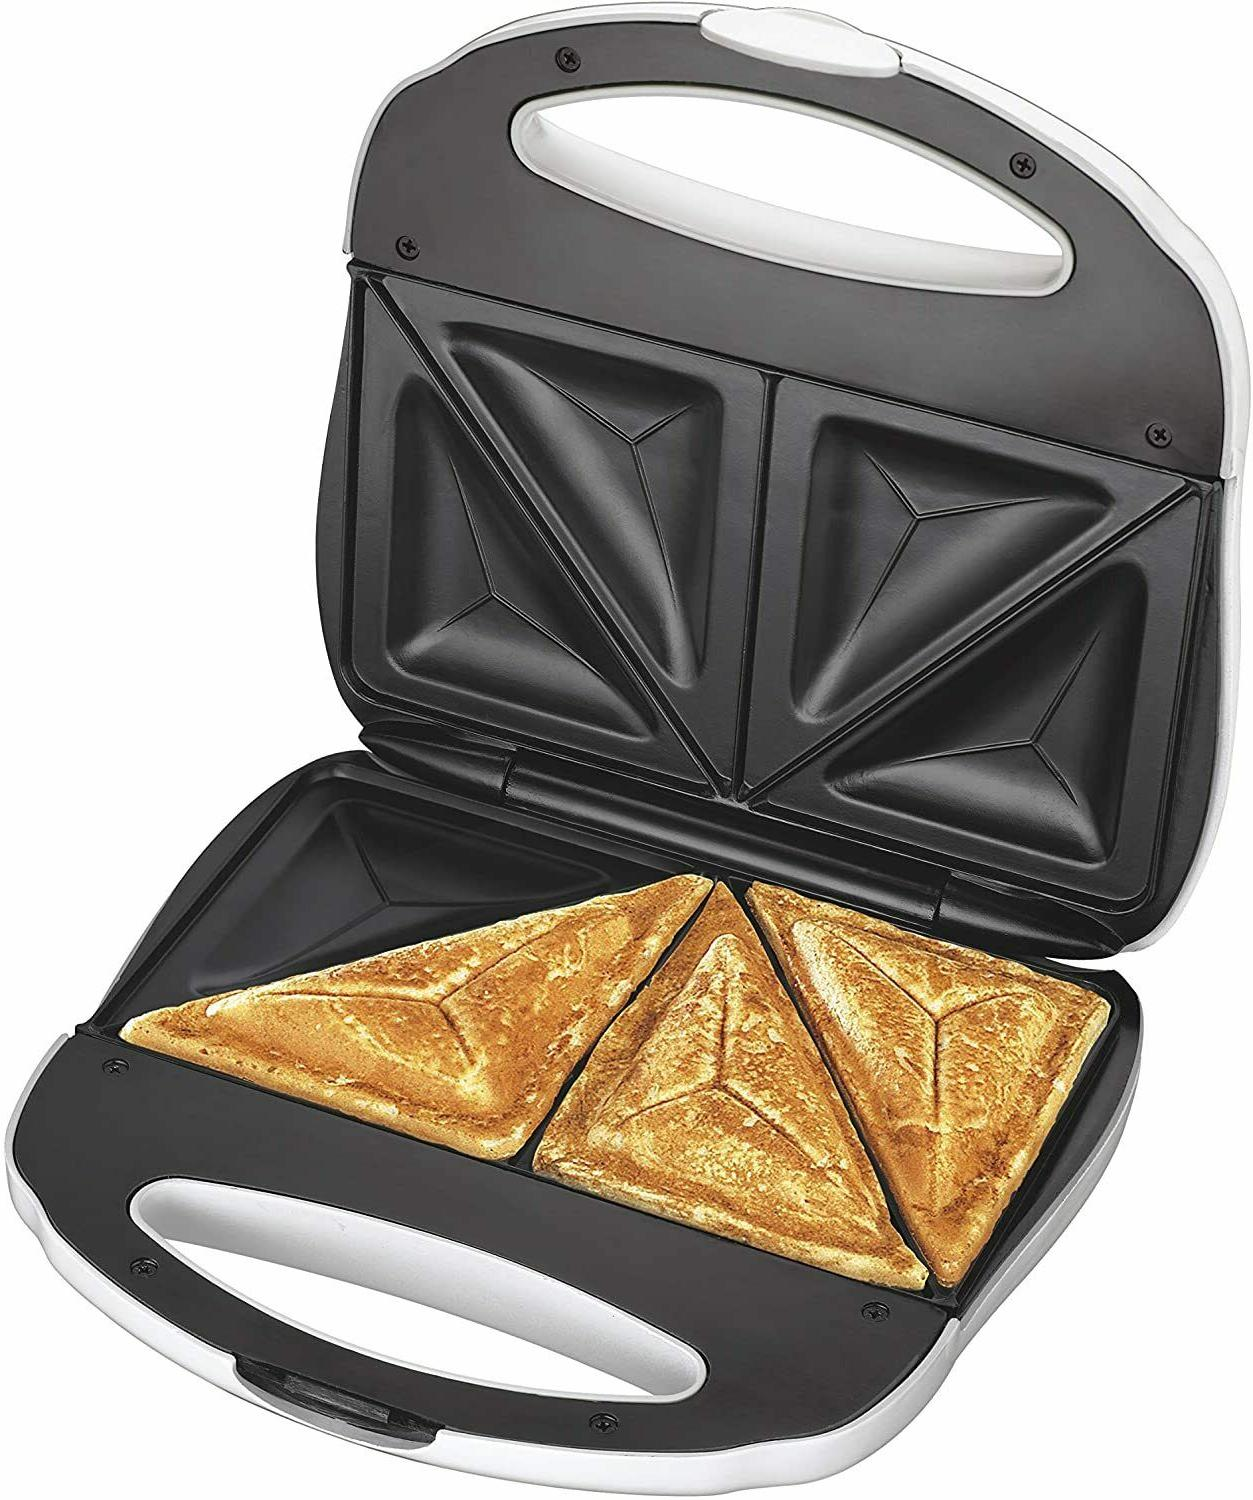 sandwich maker toaster easy clean nonstick plates